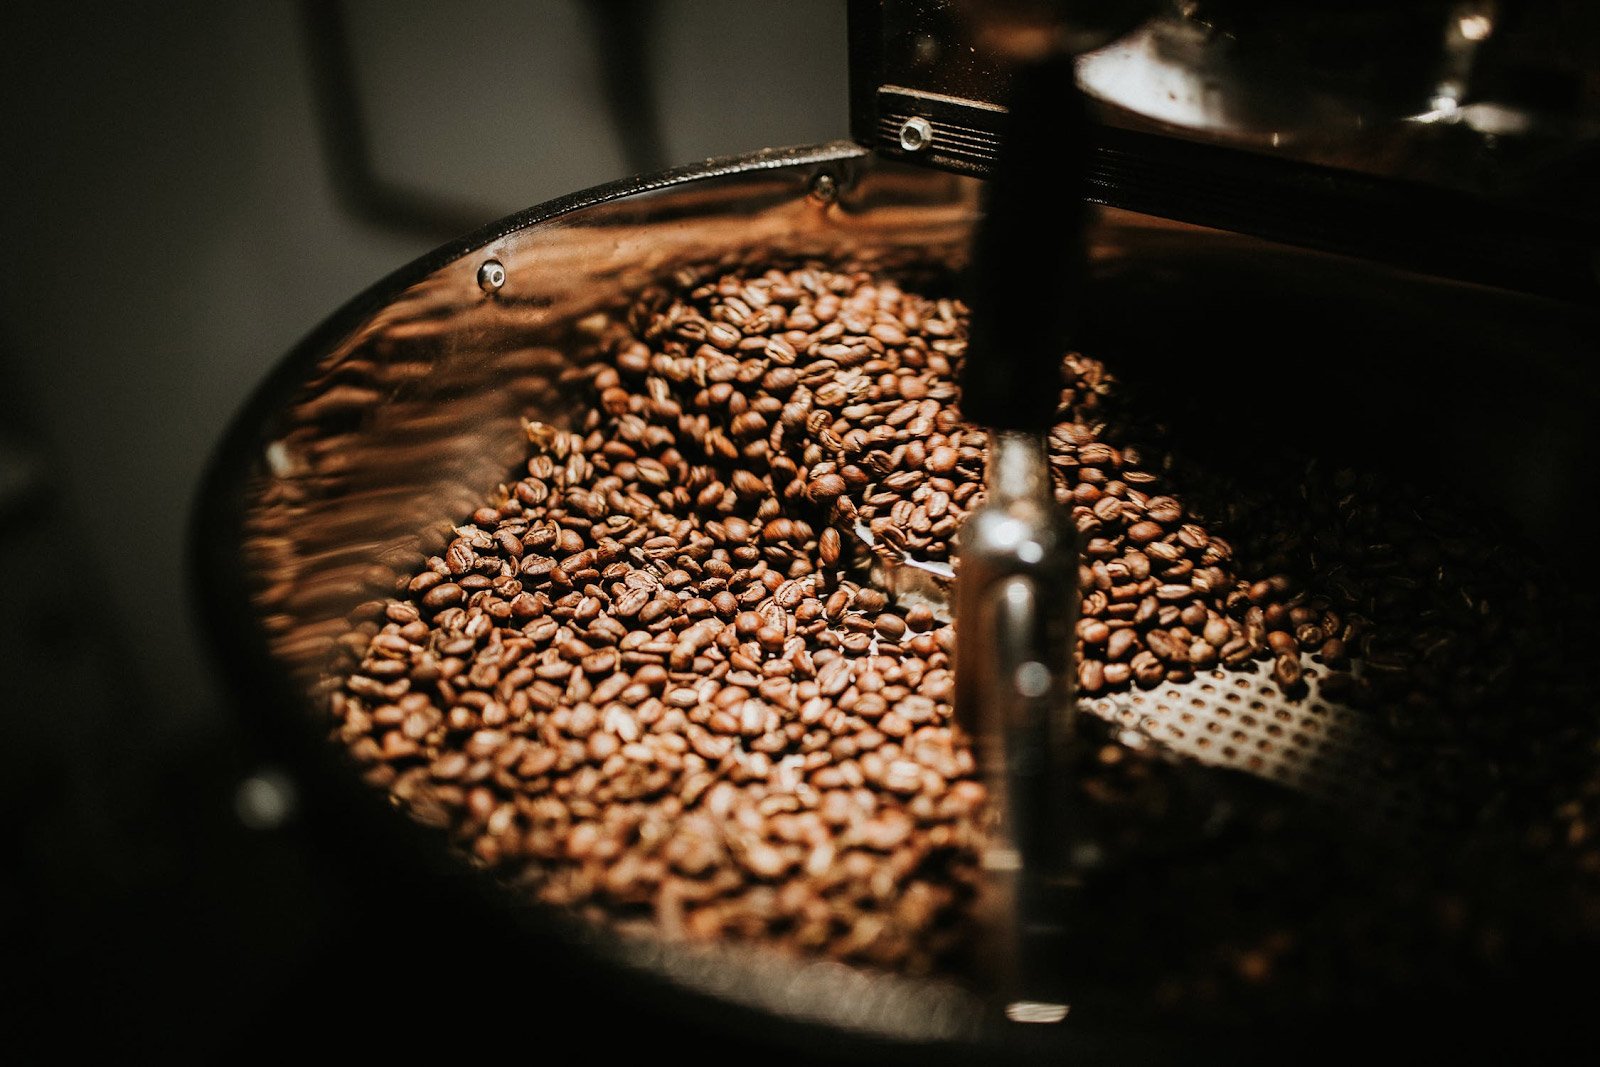 coffee beans being roasted in a coffee roasting machine